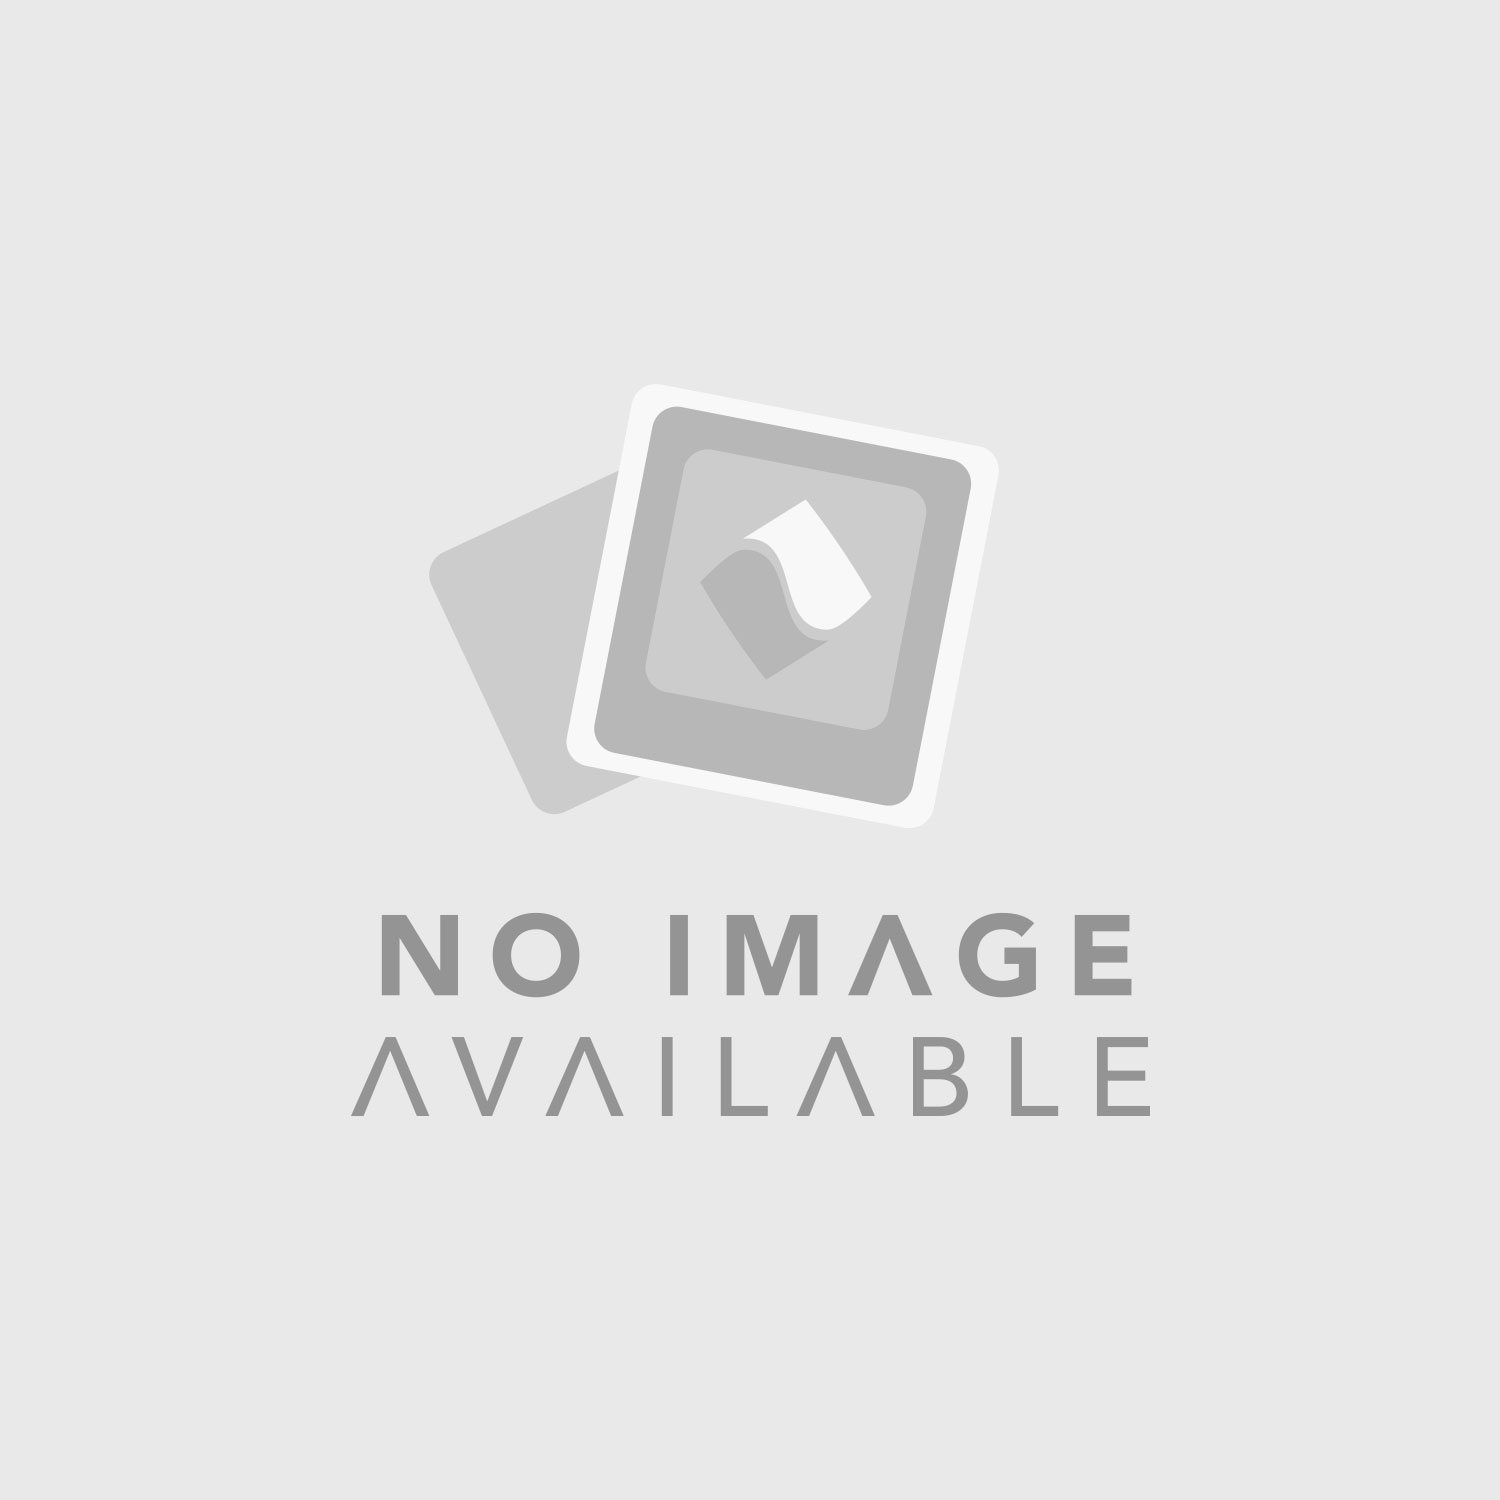 D'Addario EXL110 Electric Guitar Strings (10-46)